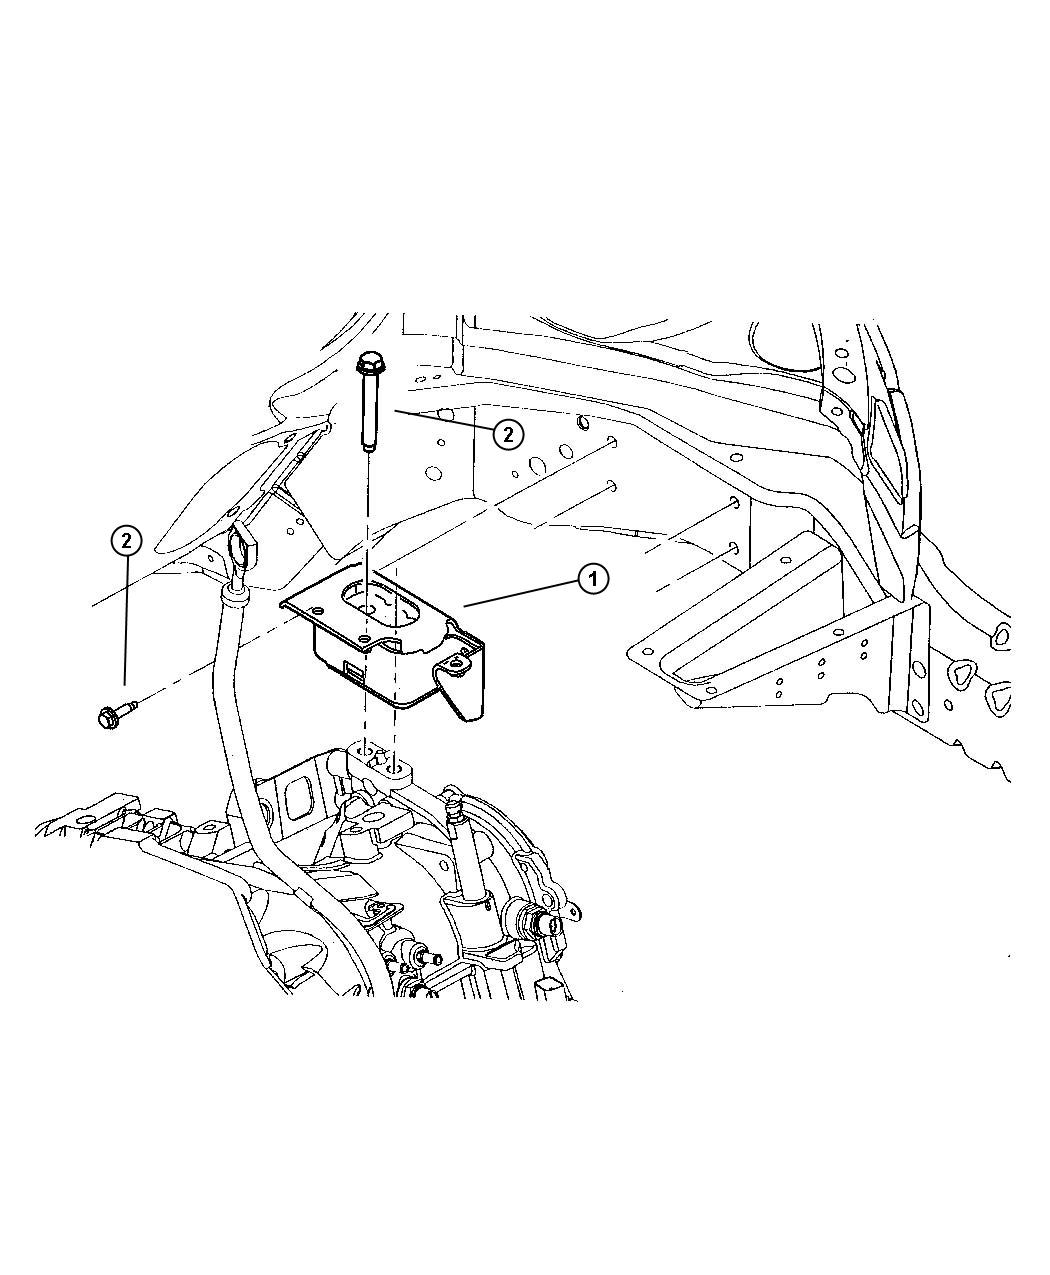 Jeep Liberty Bolt Used For Bolt And Coned Washer